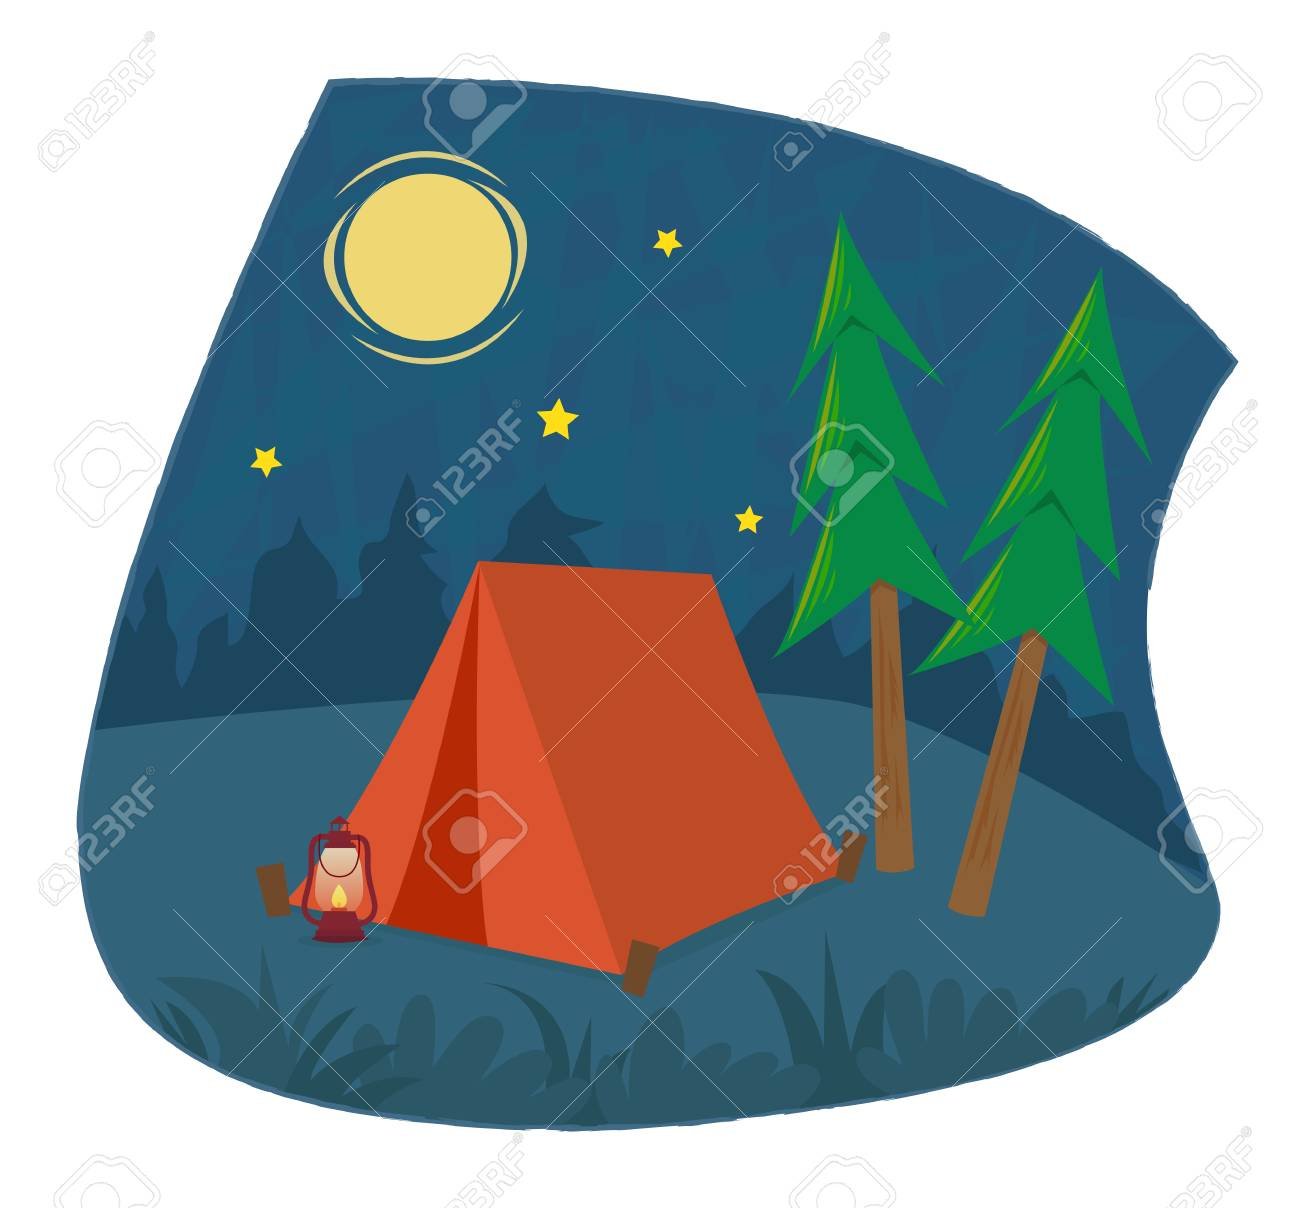 Clip art of a camping tent and a lantern under the night sky. Eps10 - 80204248